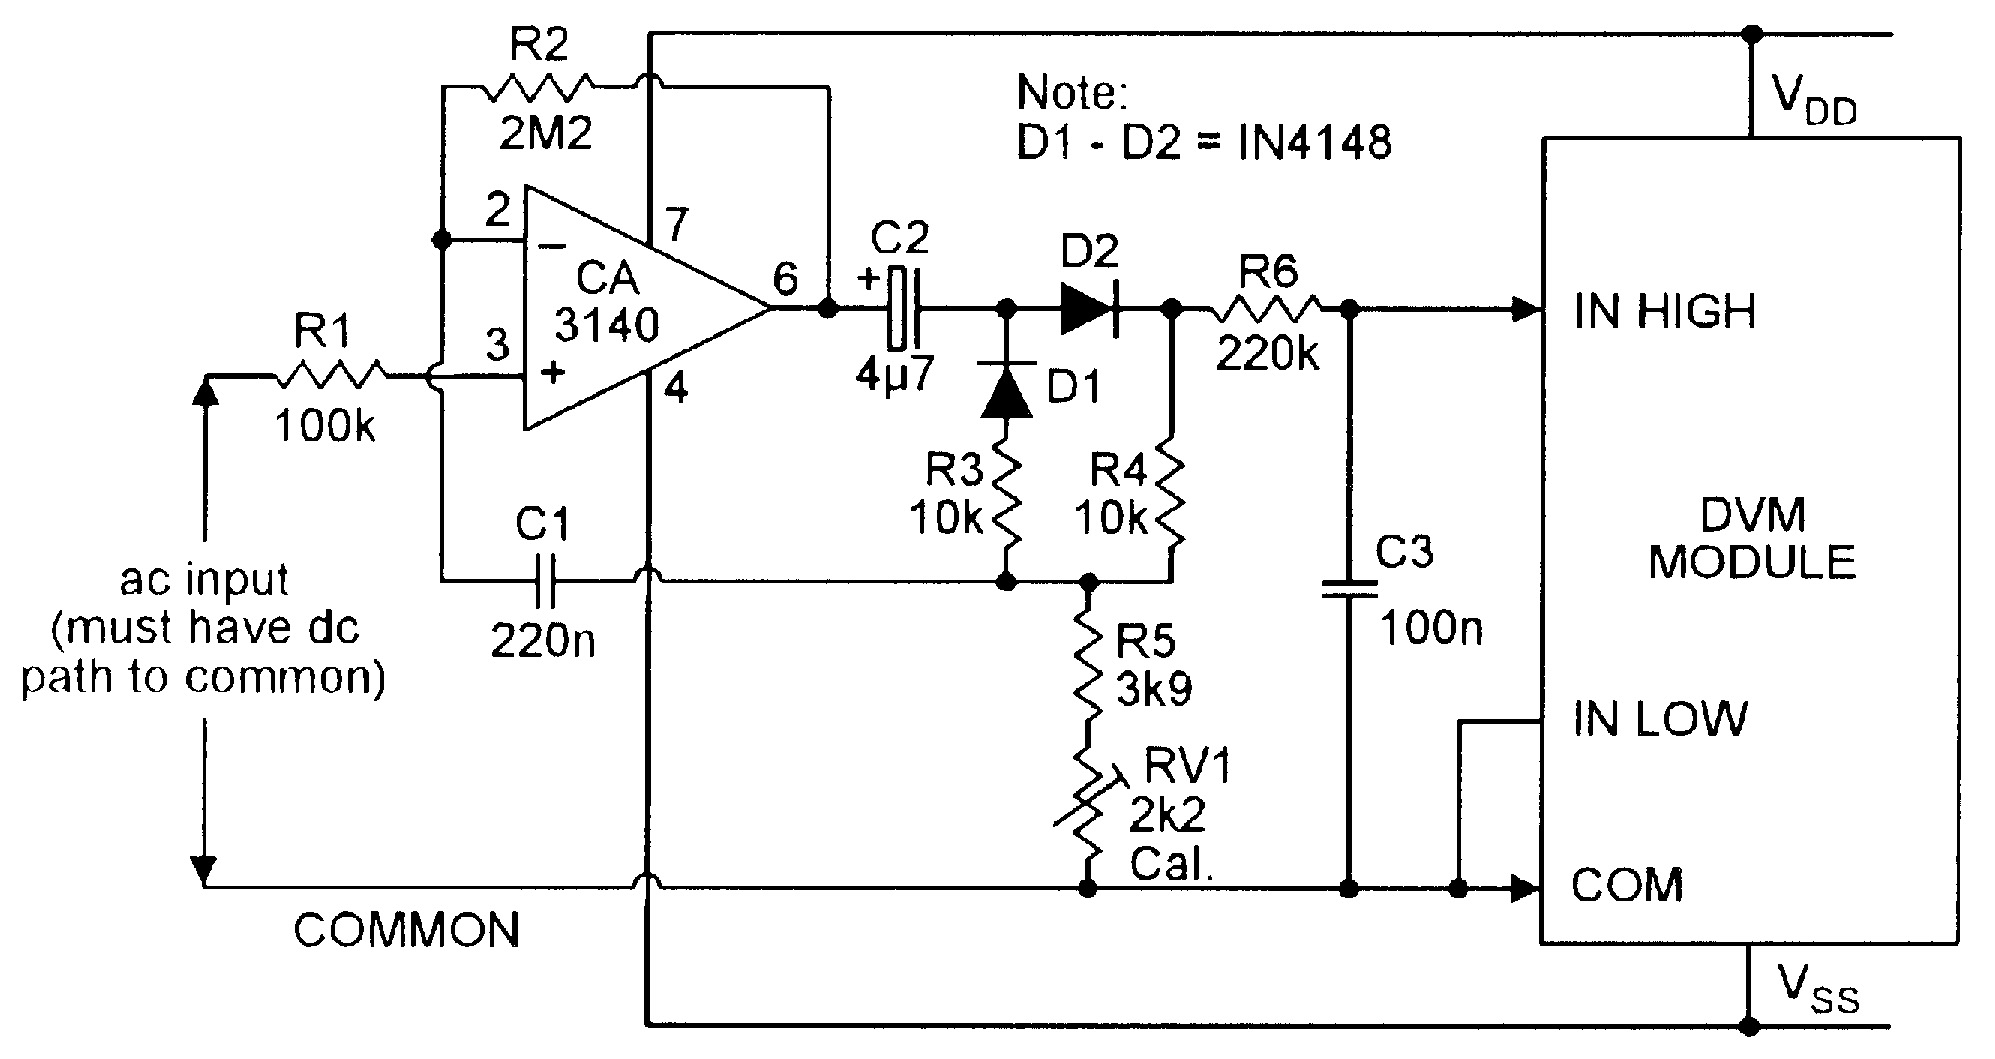 Op Amp Cookbook Part 4 Nuts Volts Magazine Make This Simplest Continuity Tester Circuit Electronic Figure 7 Ac Dc Converter For Use With Dvm Module